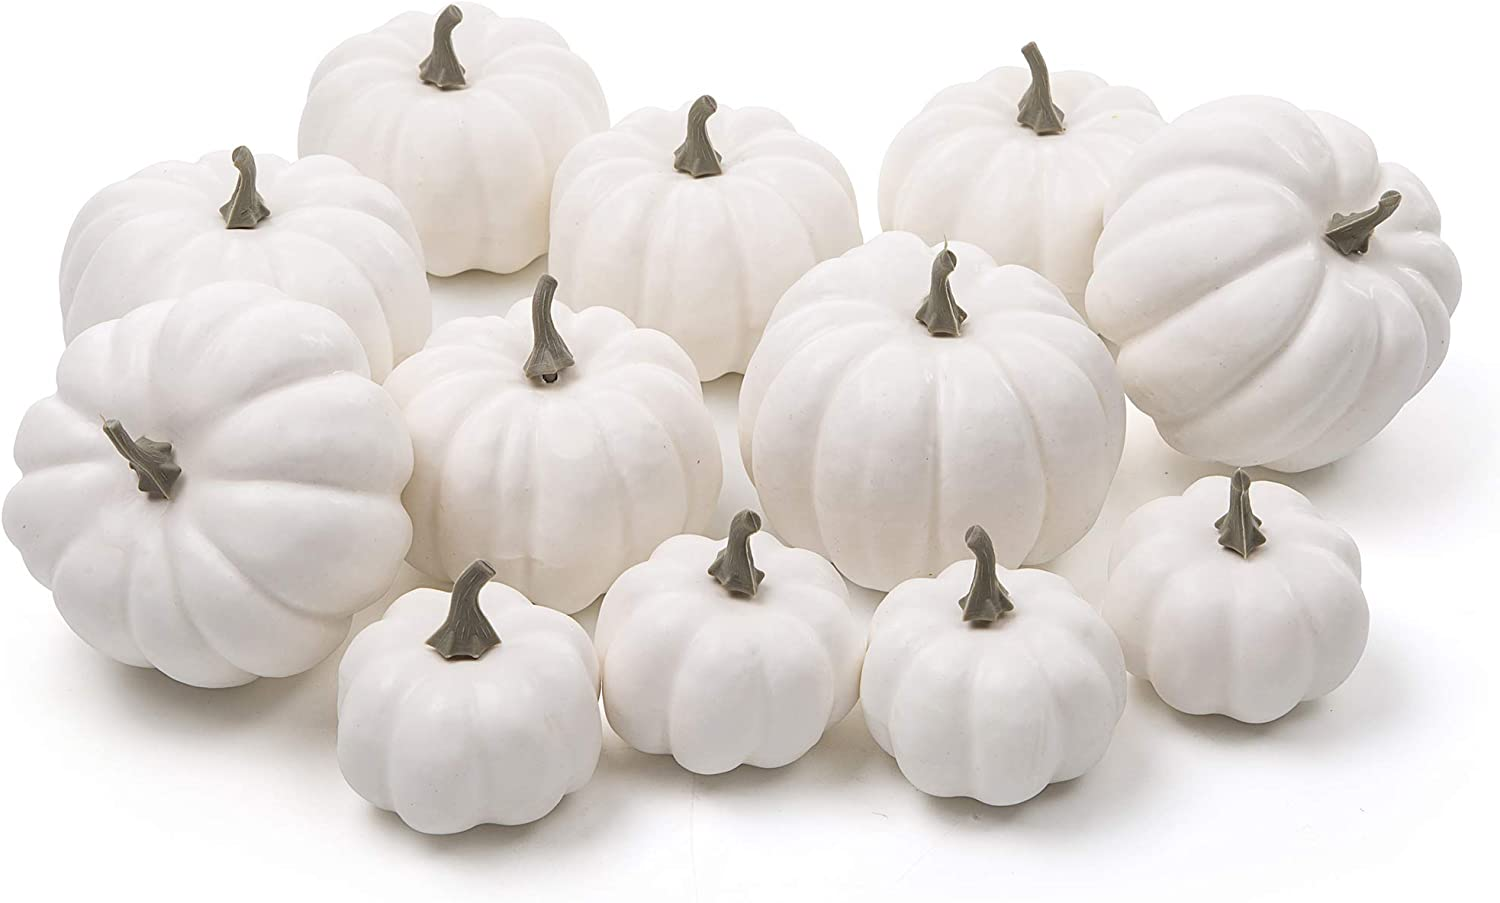 Ogrmar 12 Pack Artificial Assorted Pumpkins, Mini Fake Pumpkins Artificial Vegetables for Halloween,Harvest Thanksgiving Party Decor (White)